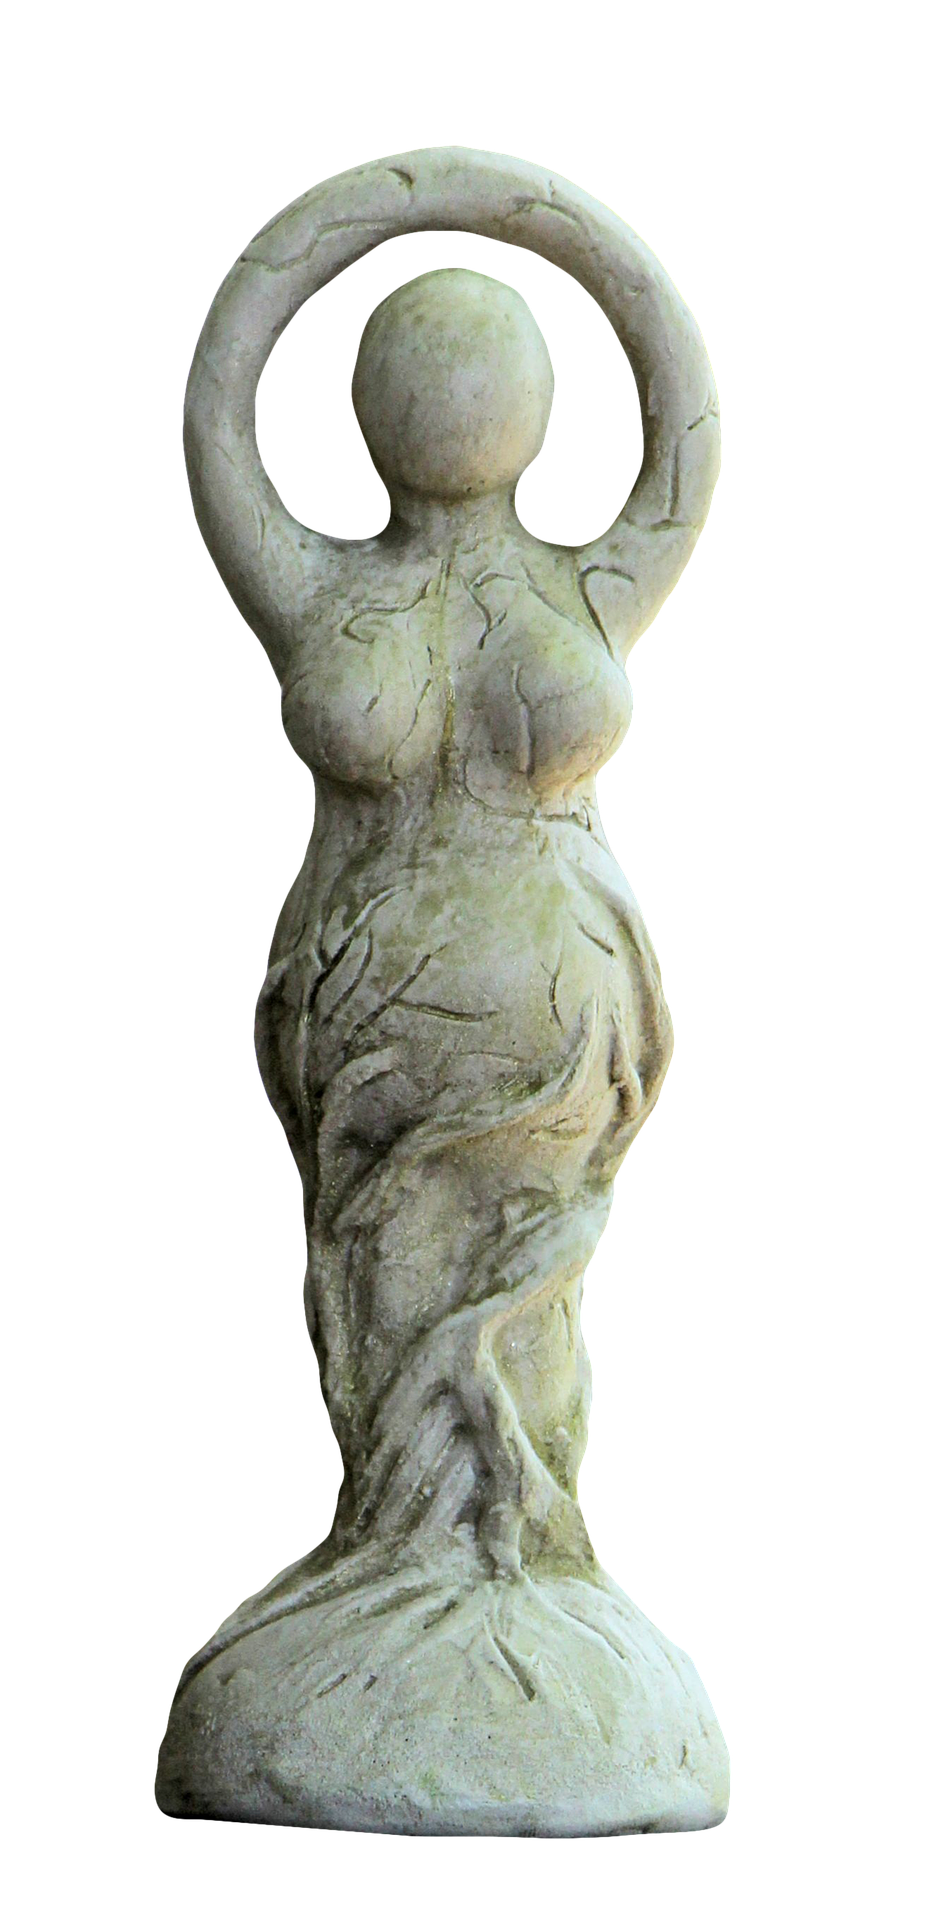 statue-3577071_1920.png